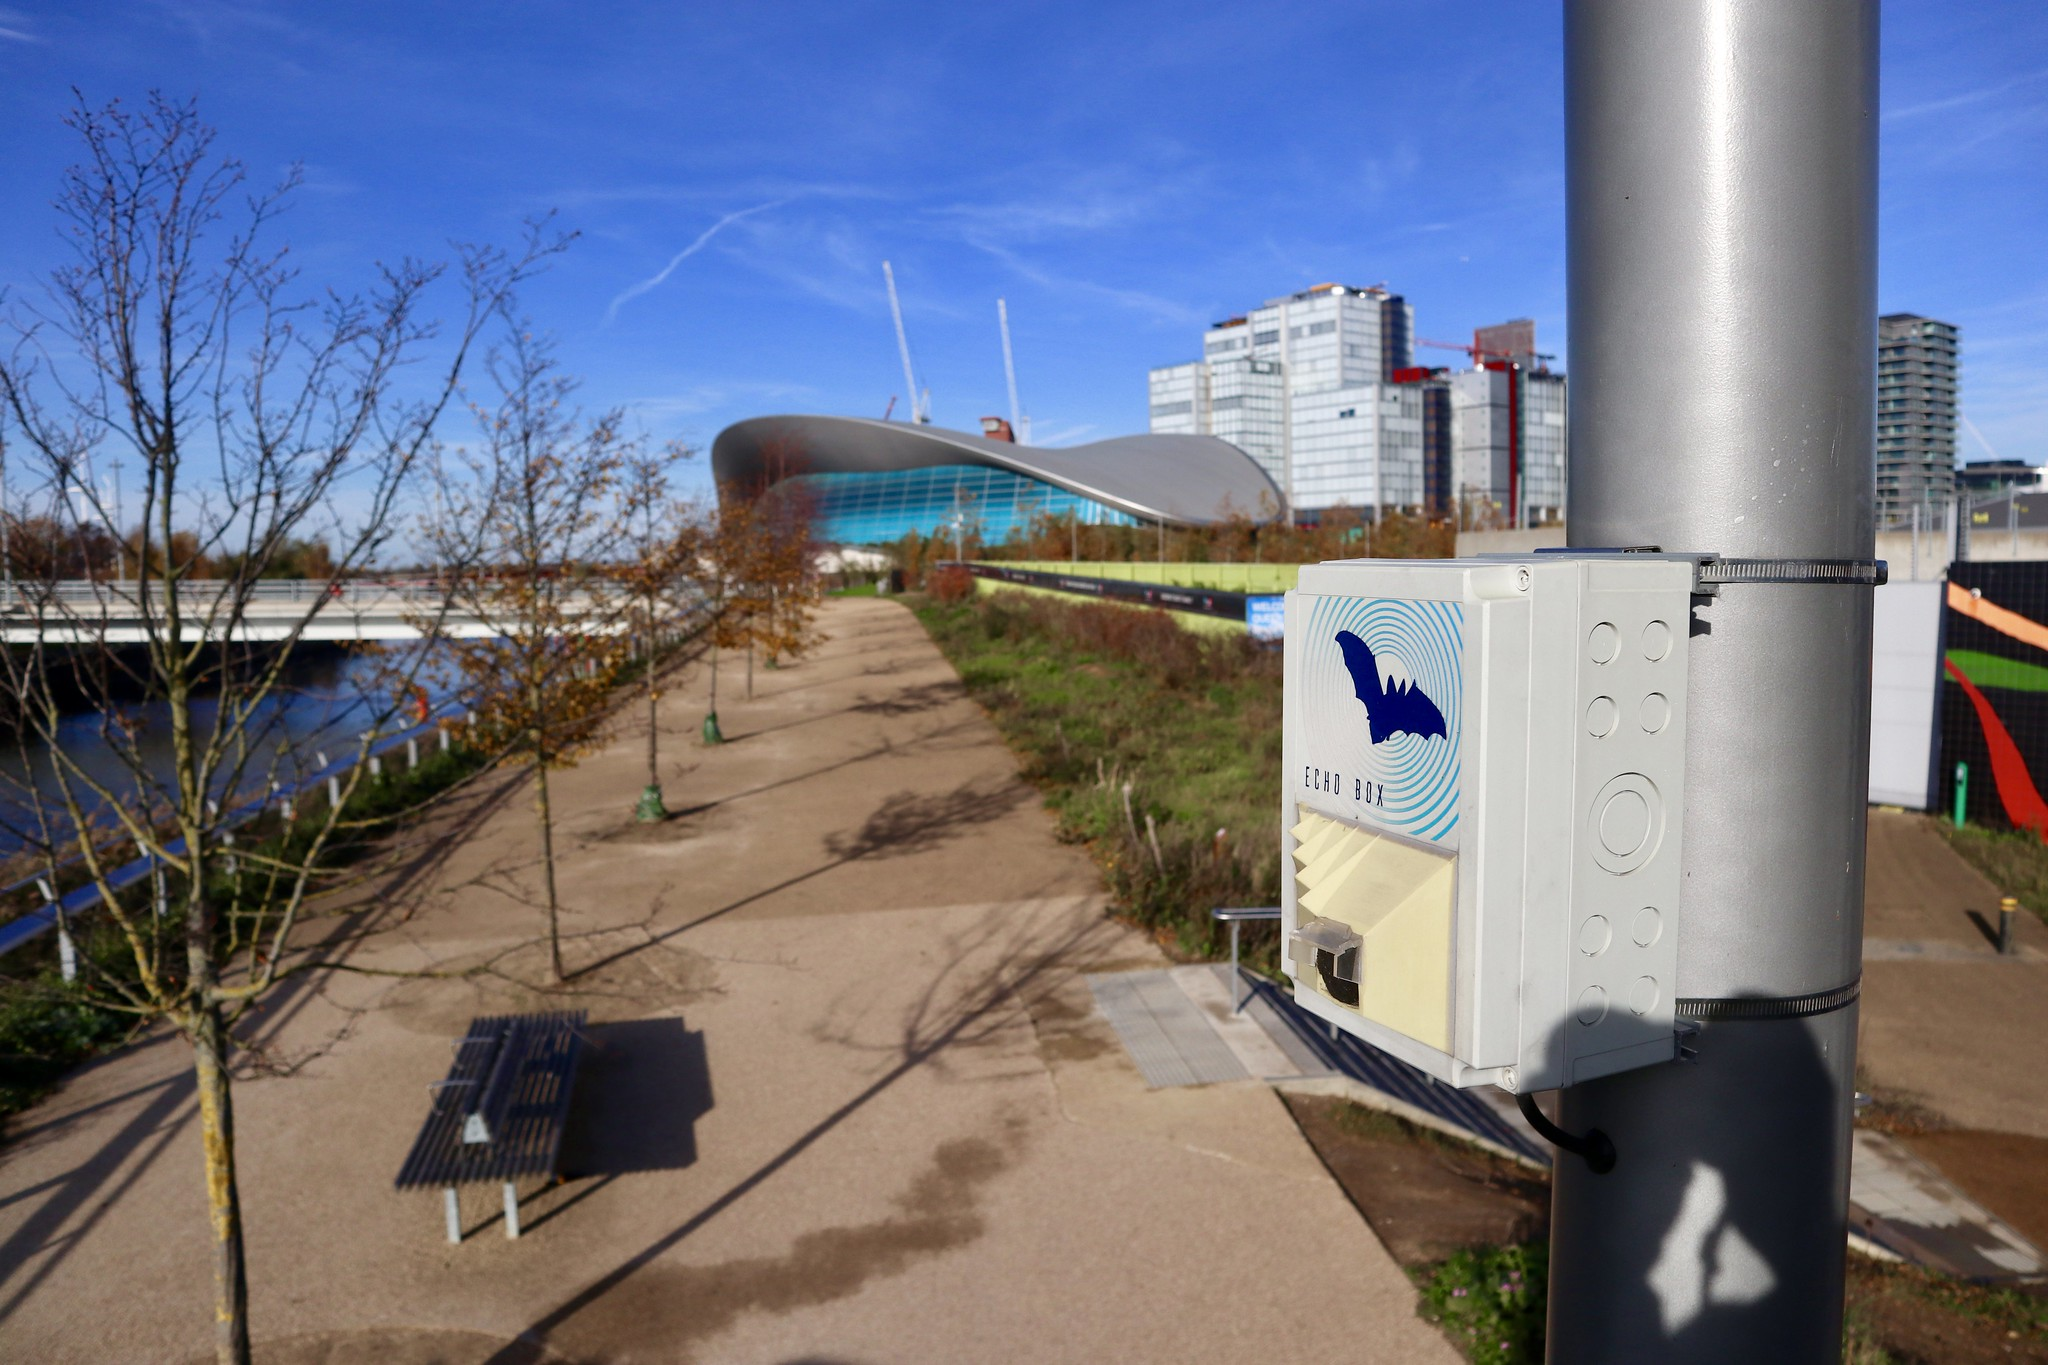 EchoBox in Queen Elizabeth Olympic Park